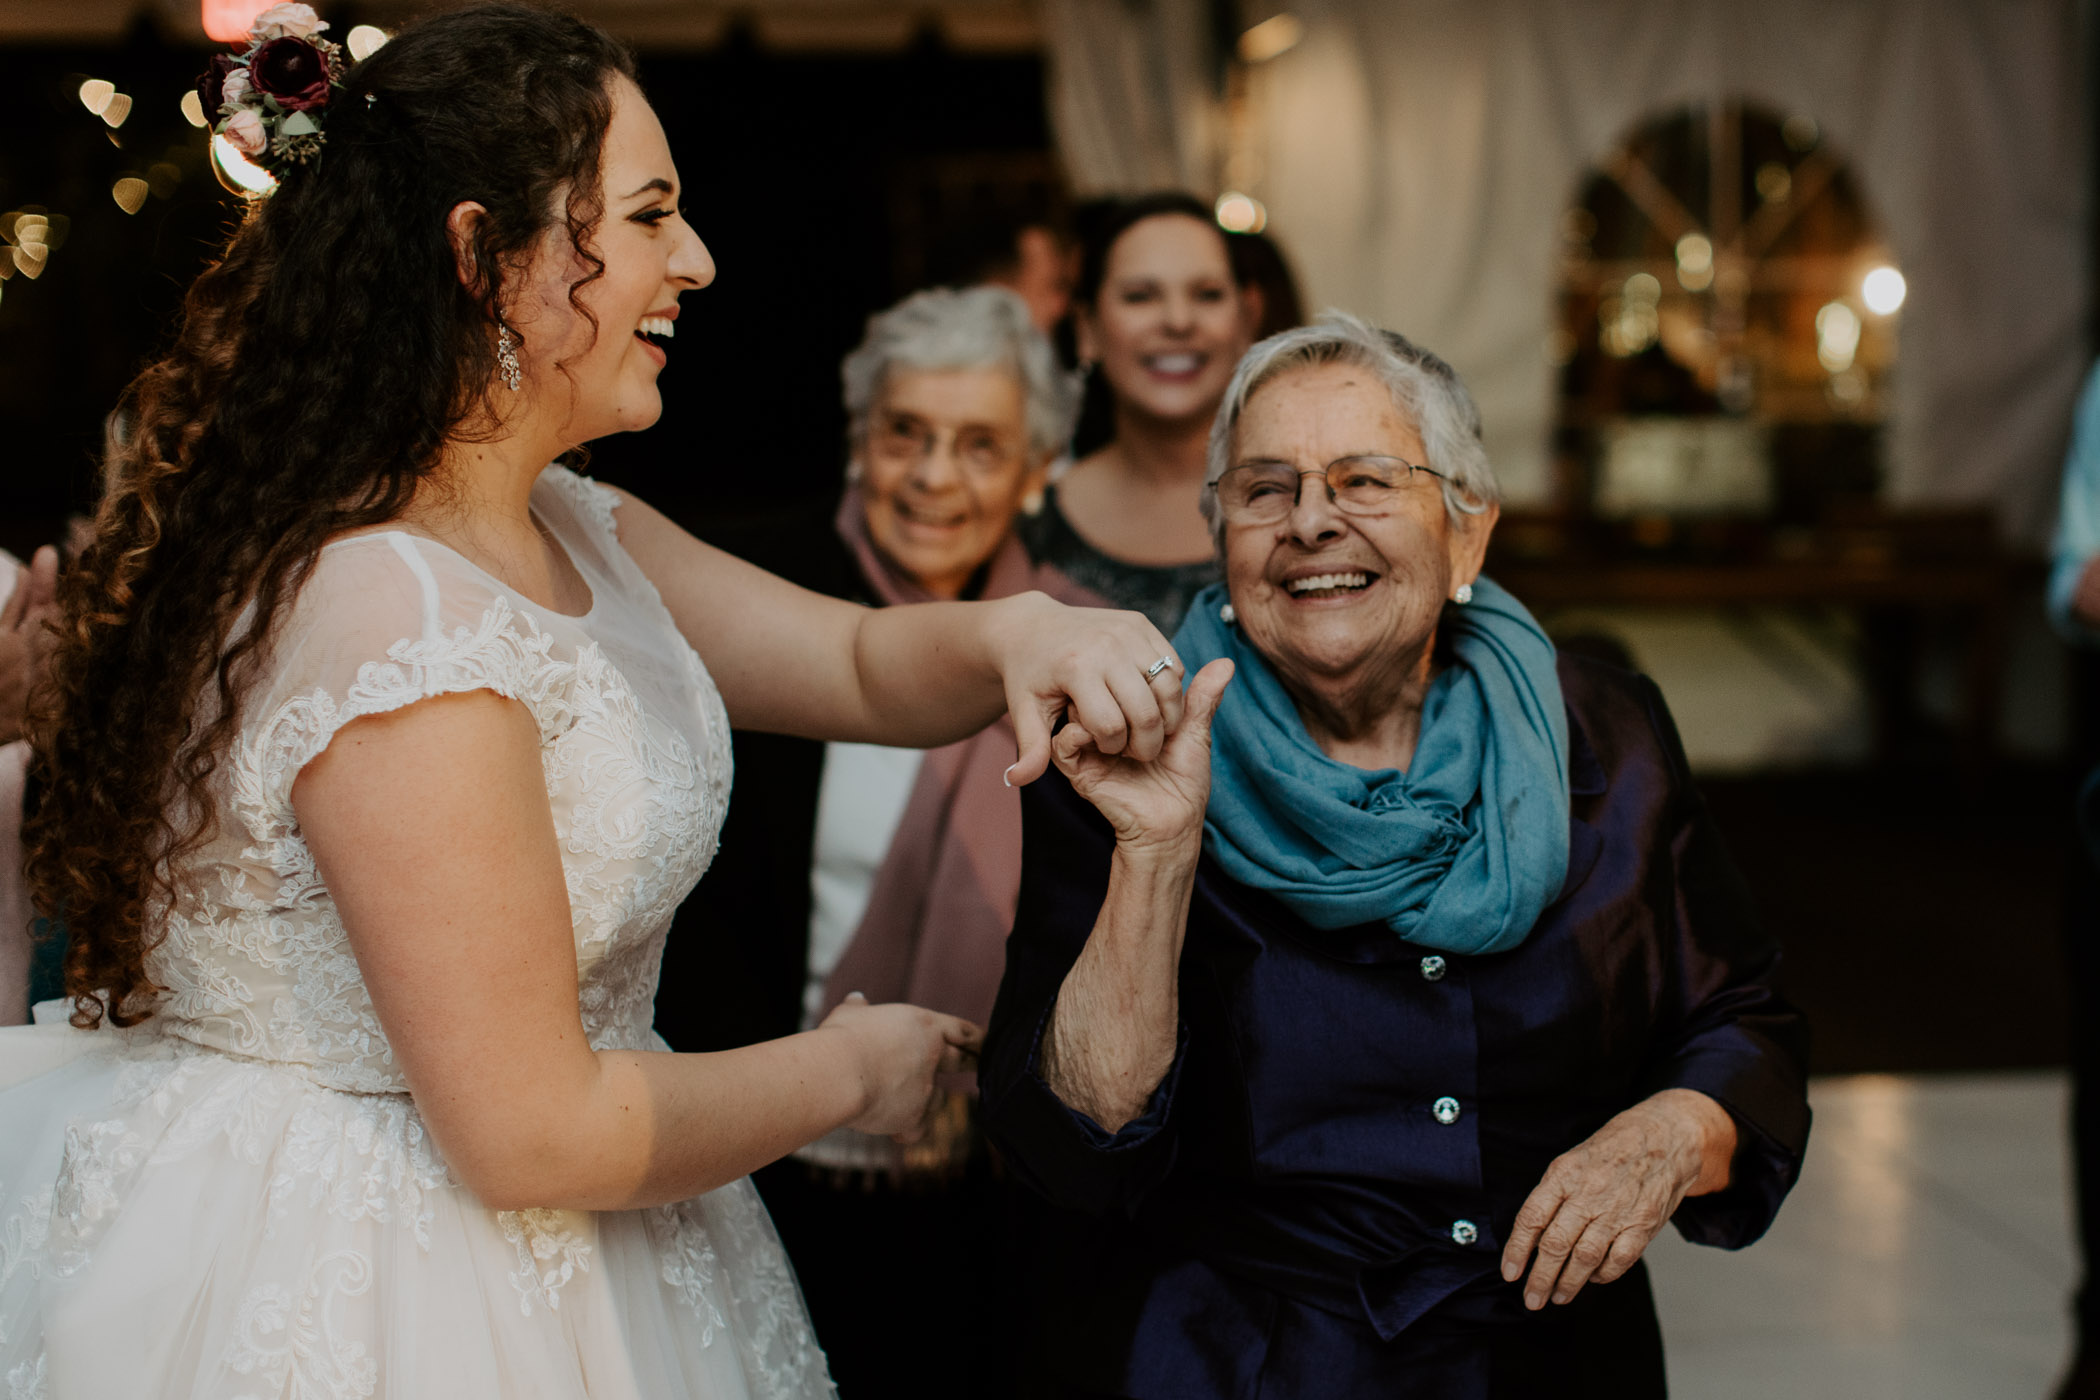 Bride dancing with grandma at wedding reception